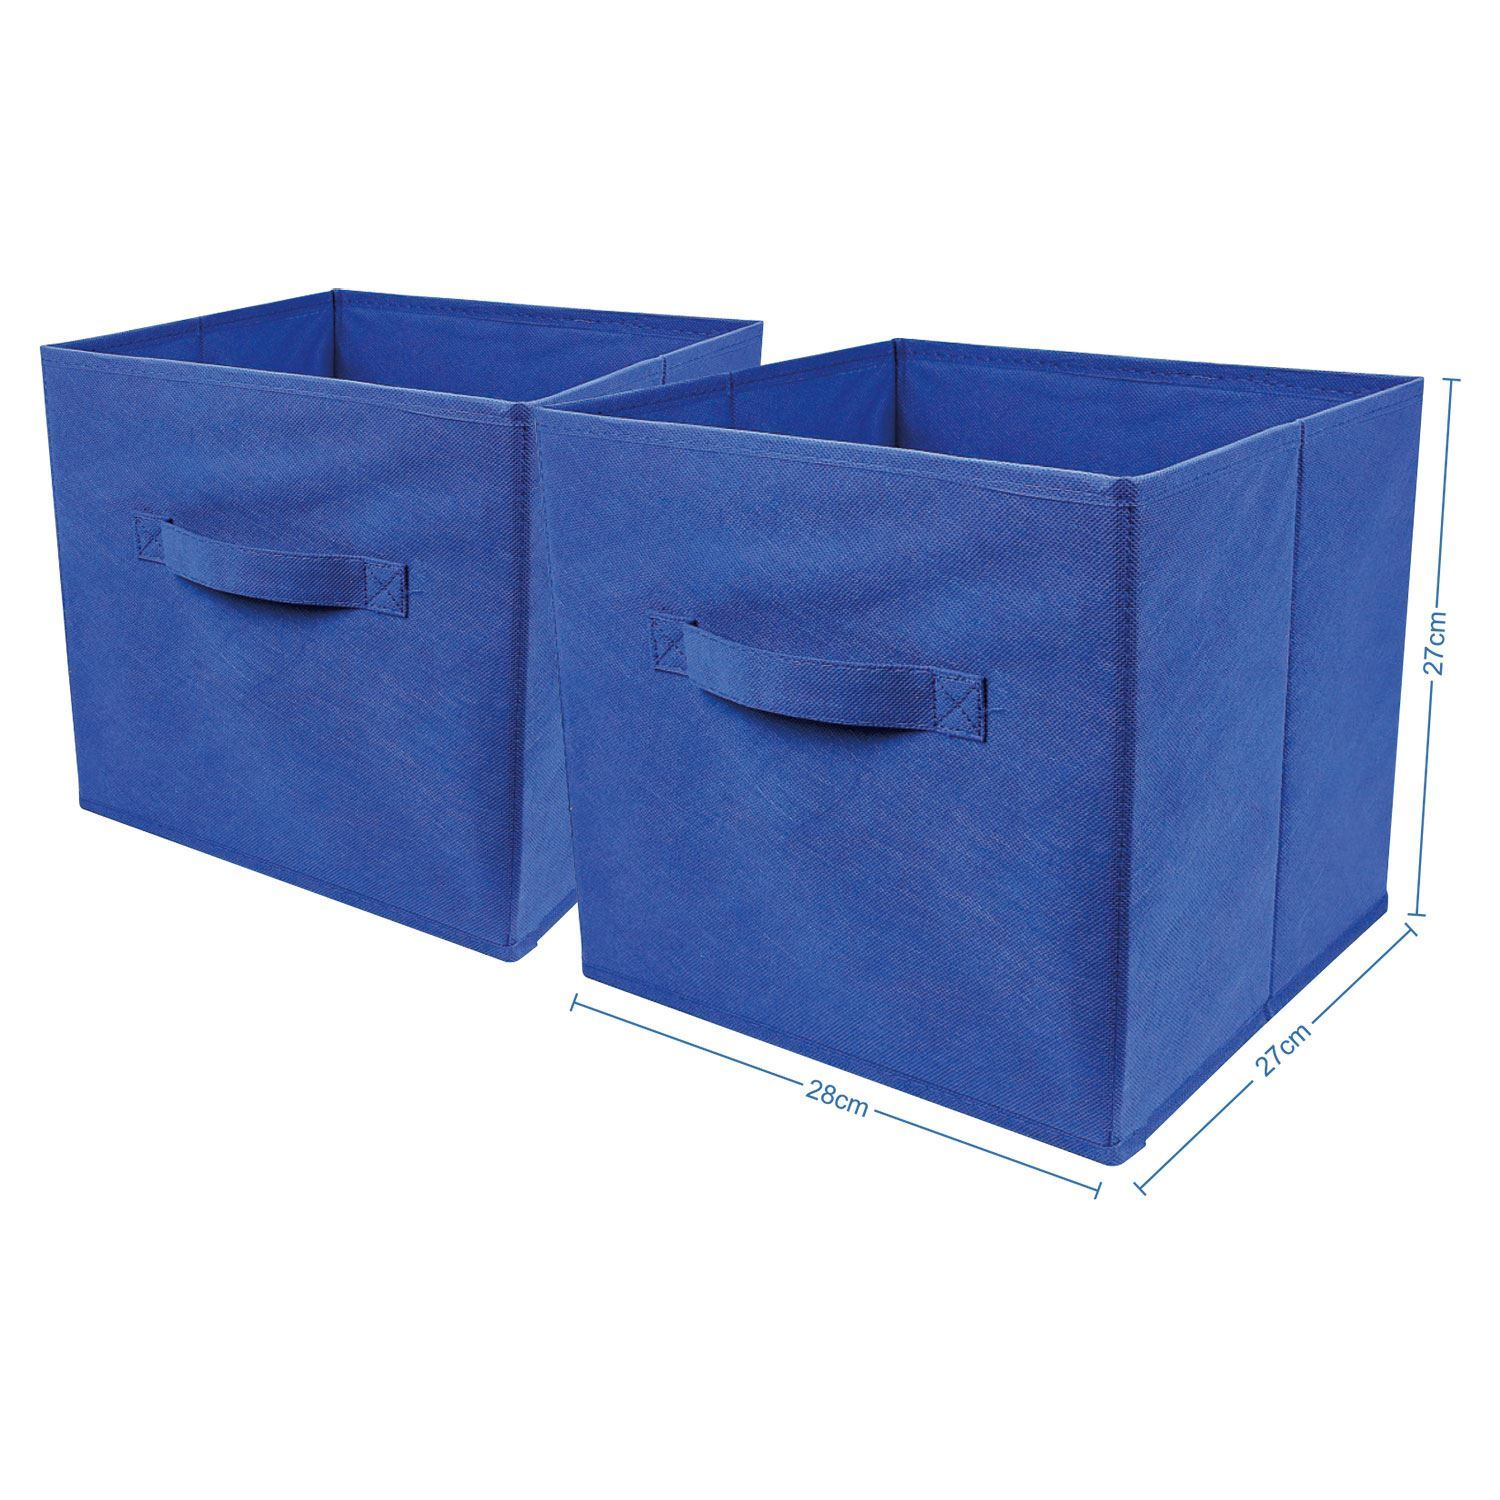 Square Collapsible Canvas Storage Box Foldable Kids Toys: 2 X Foldable Large Square Canvas Storage Box Collapsible